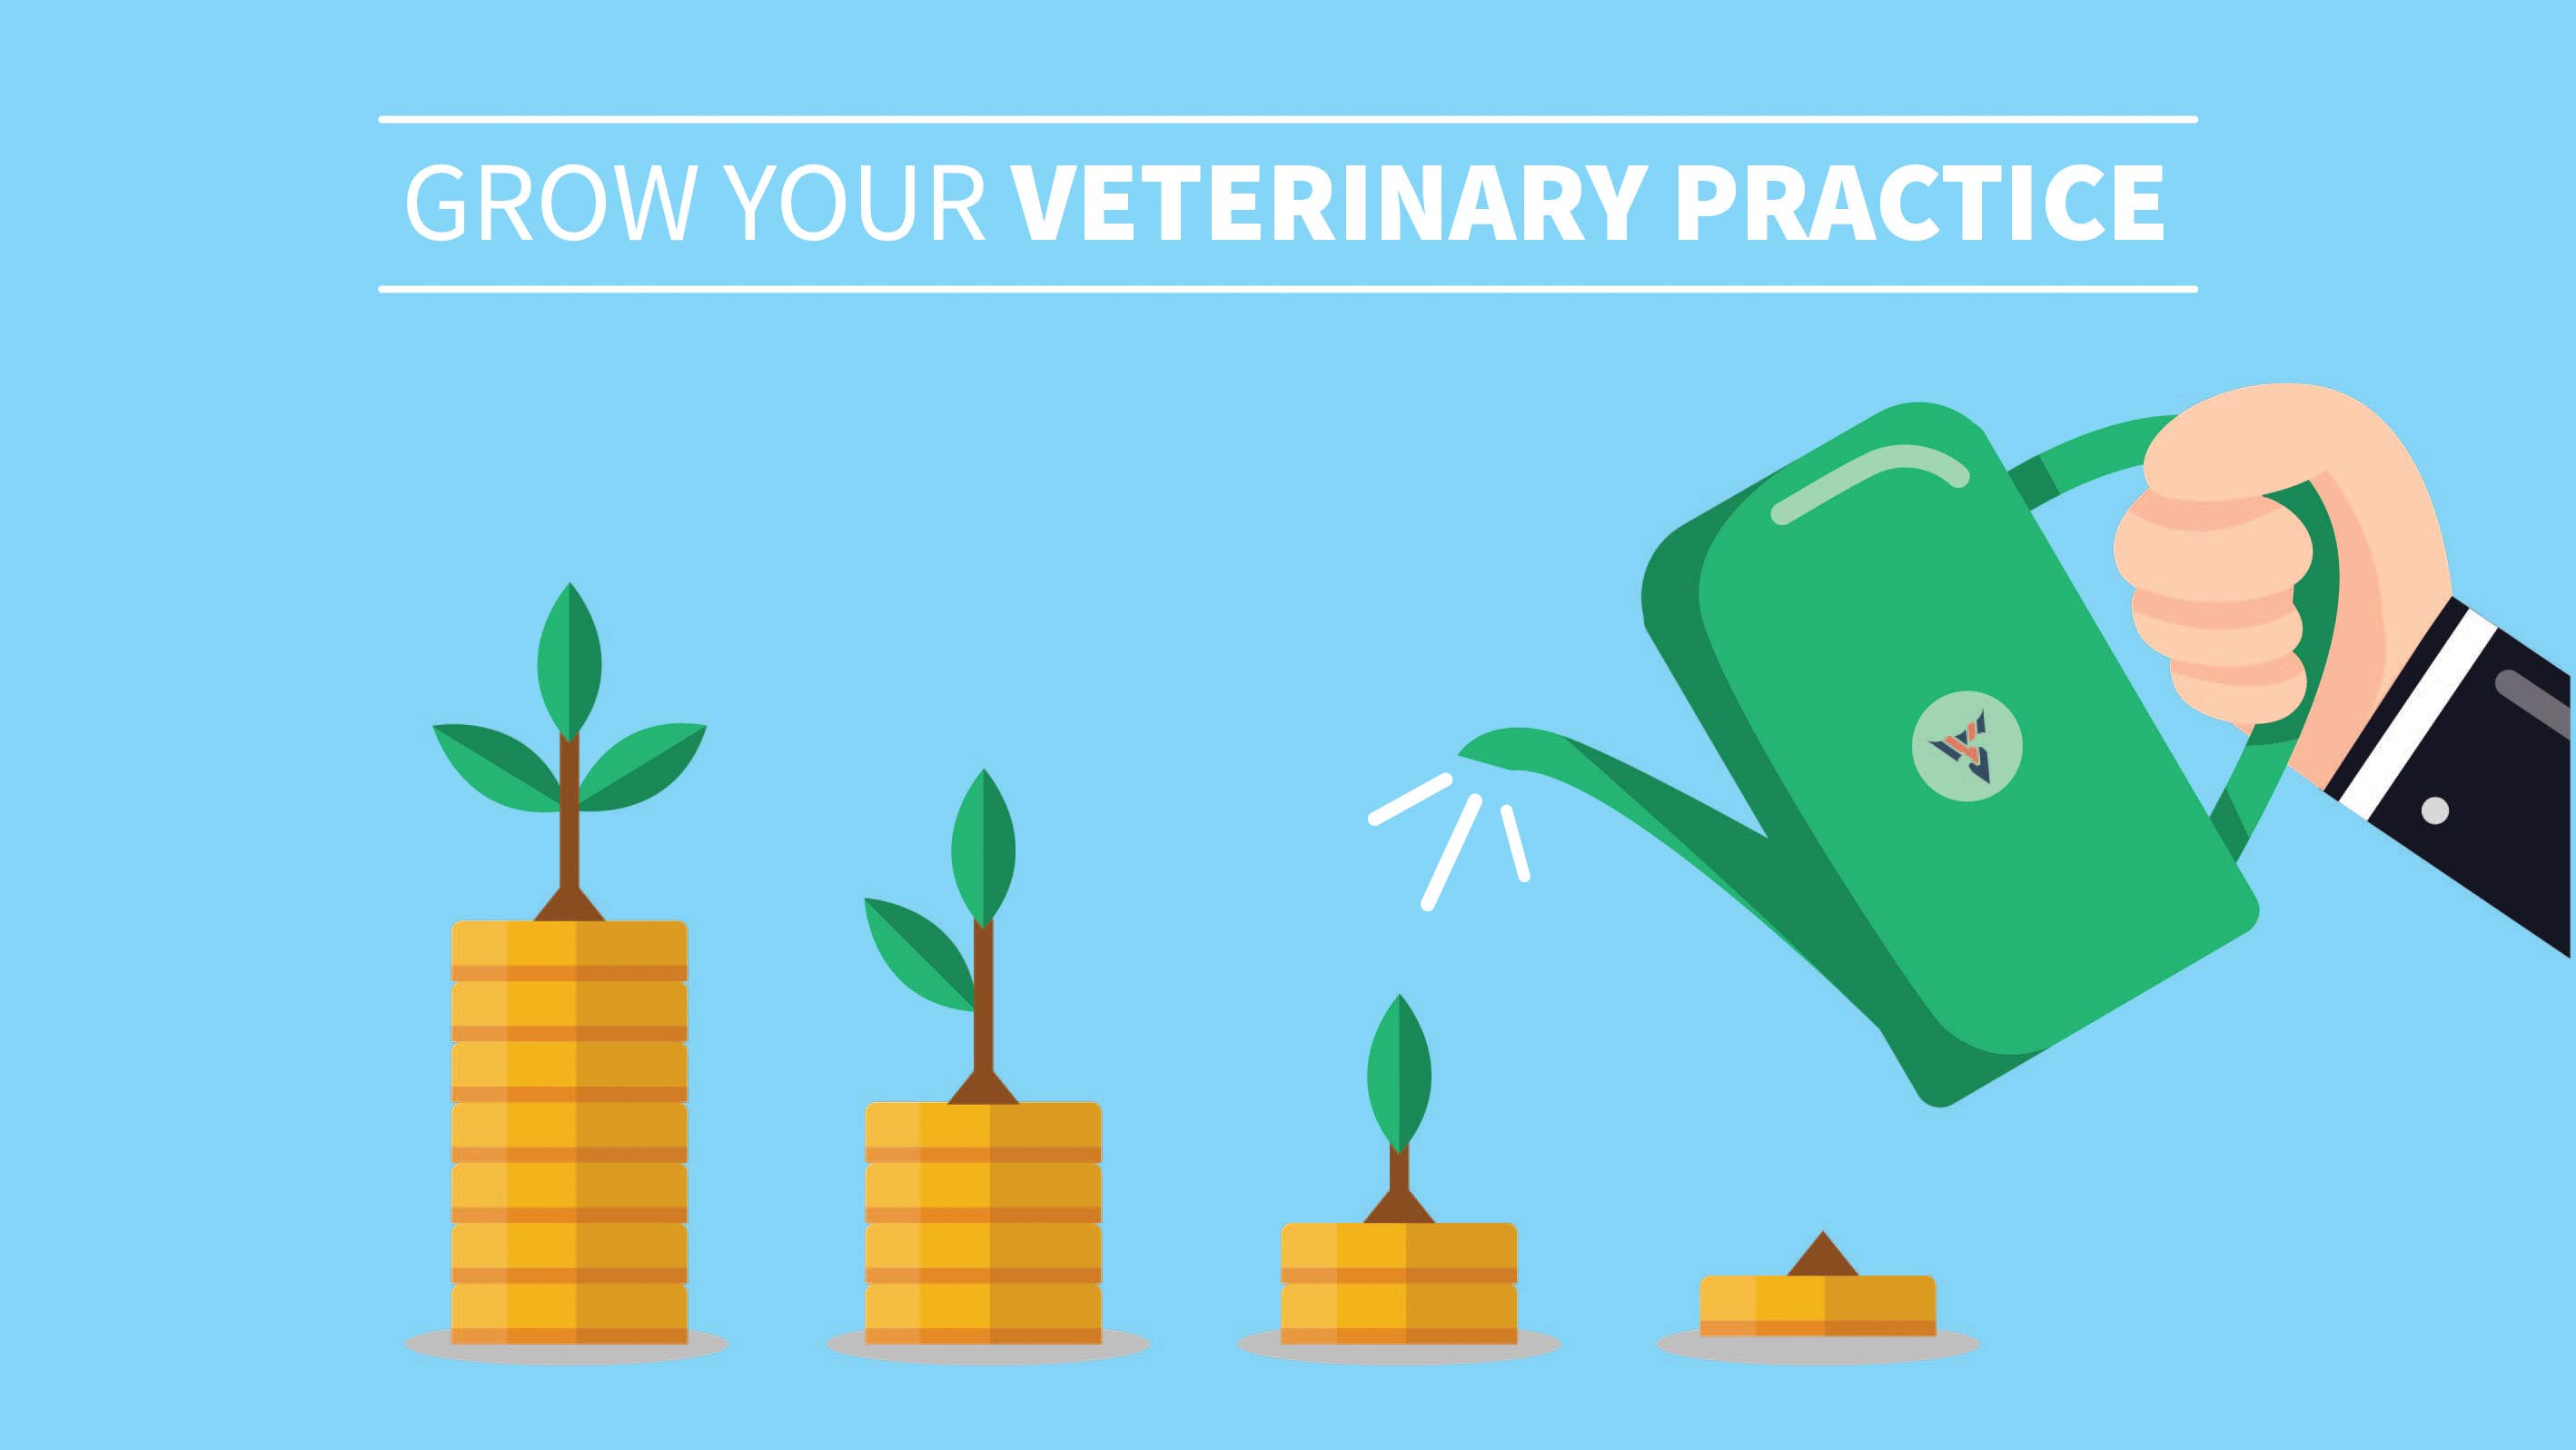 Grow your Veterinary Practice